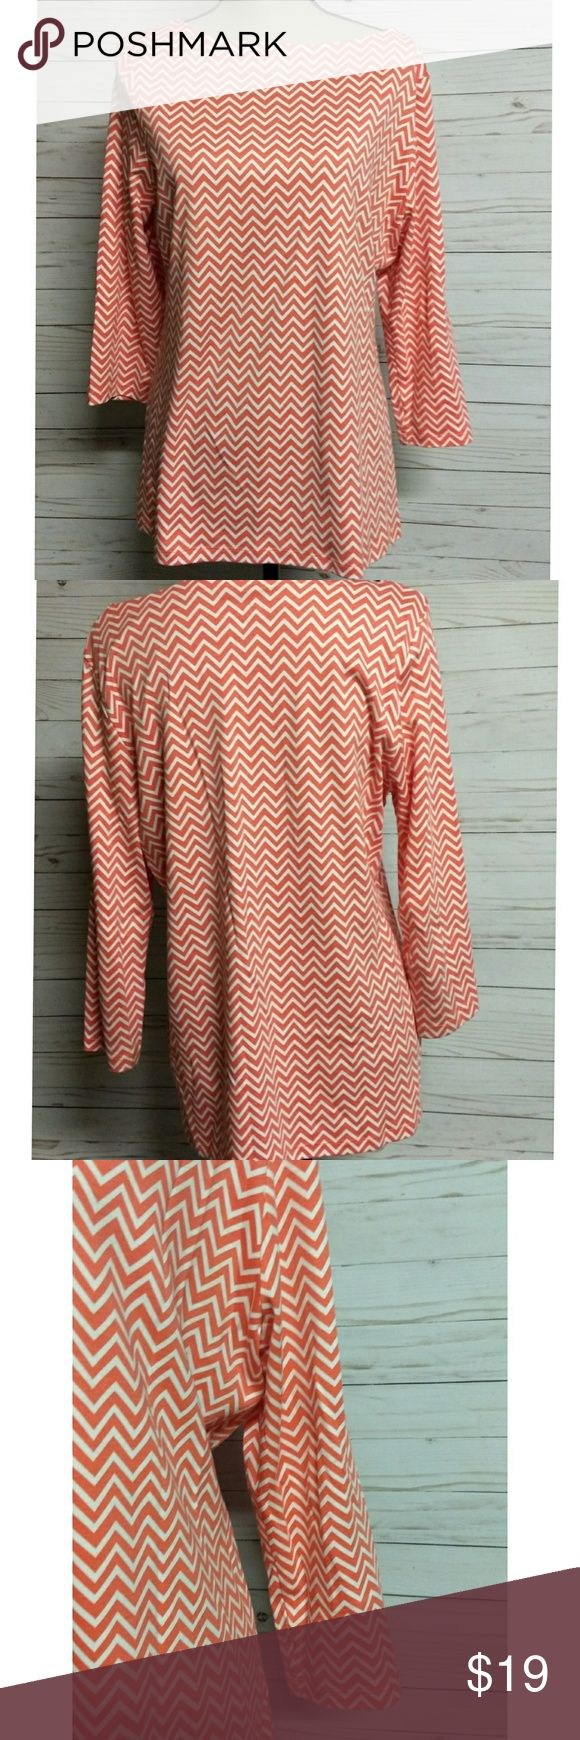 """Kim Rodgers coral chevron pullover Coral & white Chevron print Boat neck Size XL 24"""" from shoulder to hem 18""""pit to pit 19"""" from shoulder to end of sleeve All measurements are approximate  Feel free to bundle your favorites and I will be happy to offer you a discount  Thanks for looking! Tops"""